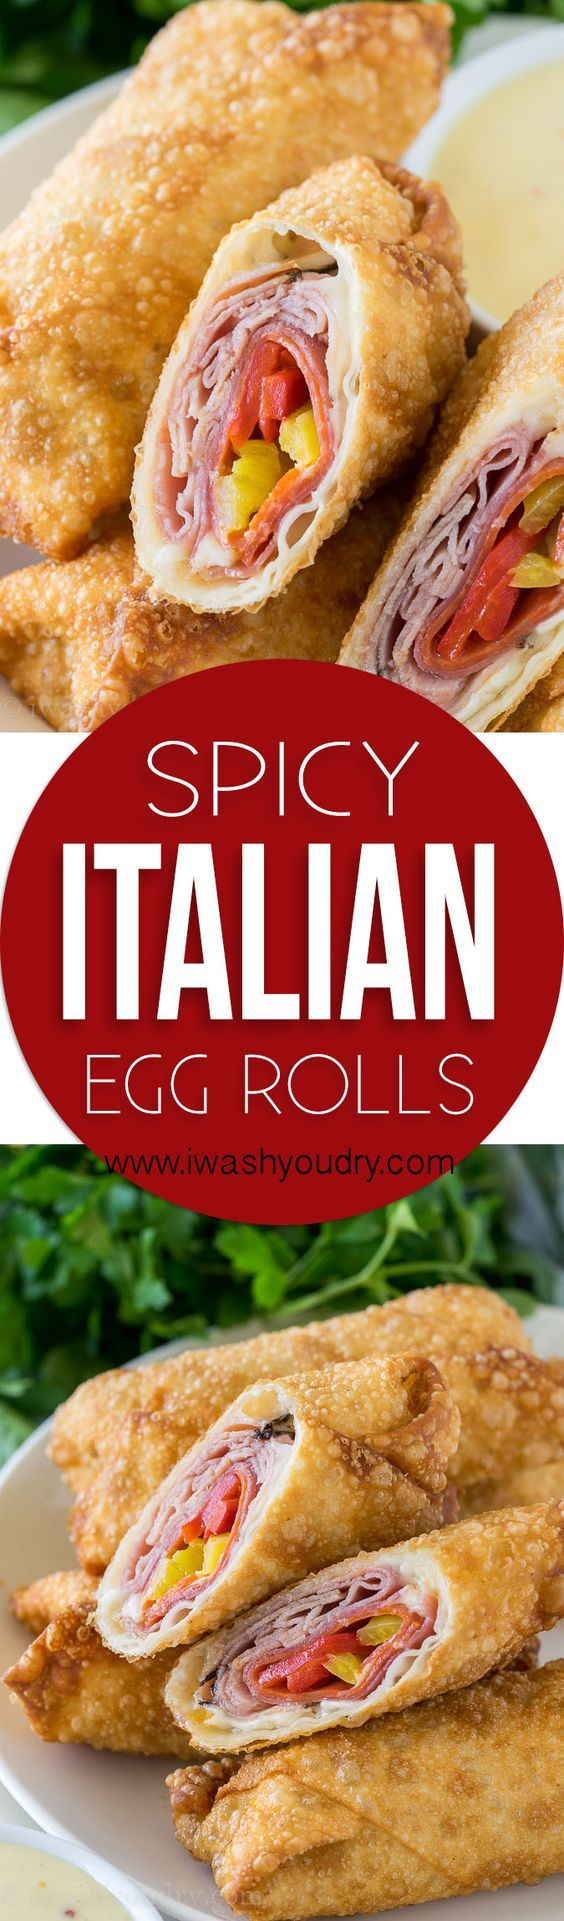 These Spicy Italian Egg Rolls have all the flavors of your favorite sub sandwich packed inside a deep fried egg roll. Serve this tasty appetizer with a side of creamy italian dressing and you'll be in heaven!